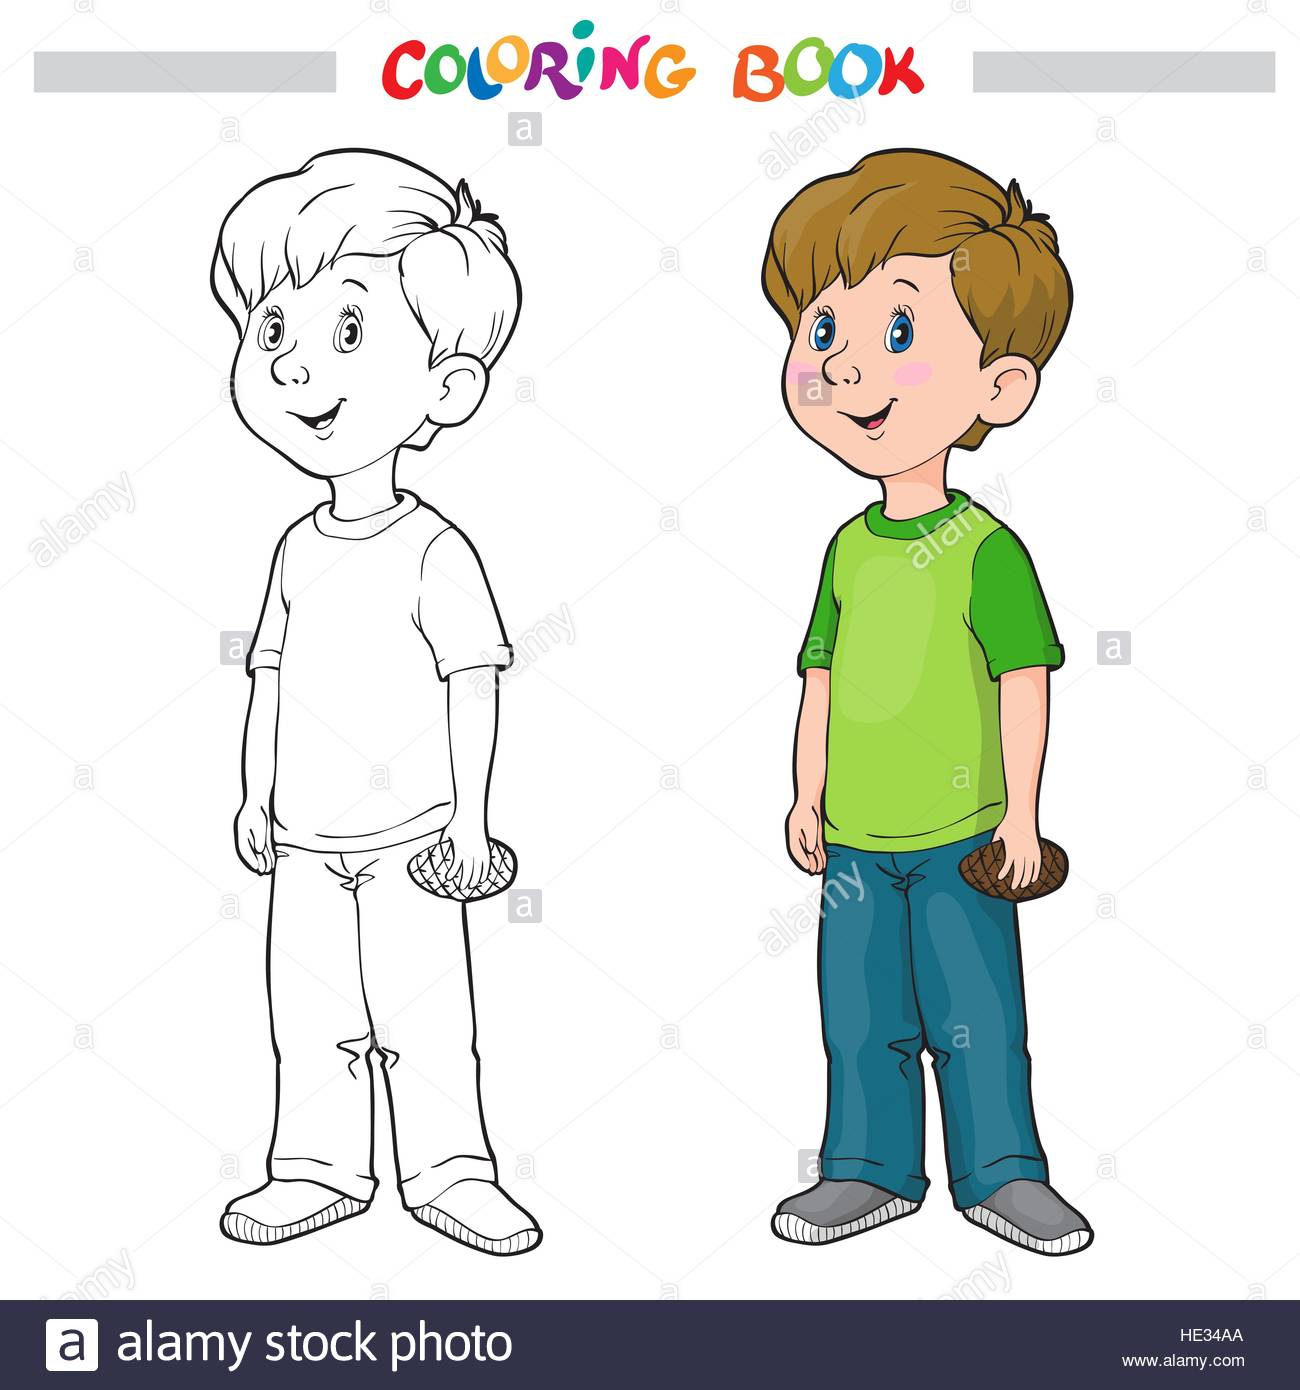 Coloring Book Or Page Outline Of A Cartoon Boy